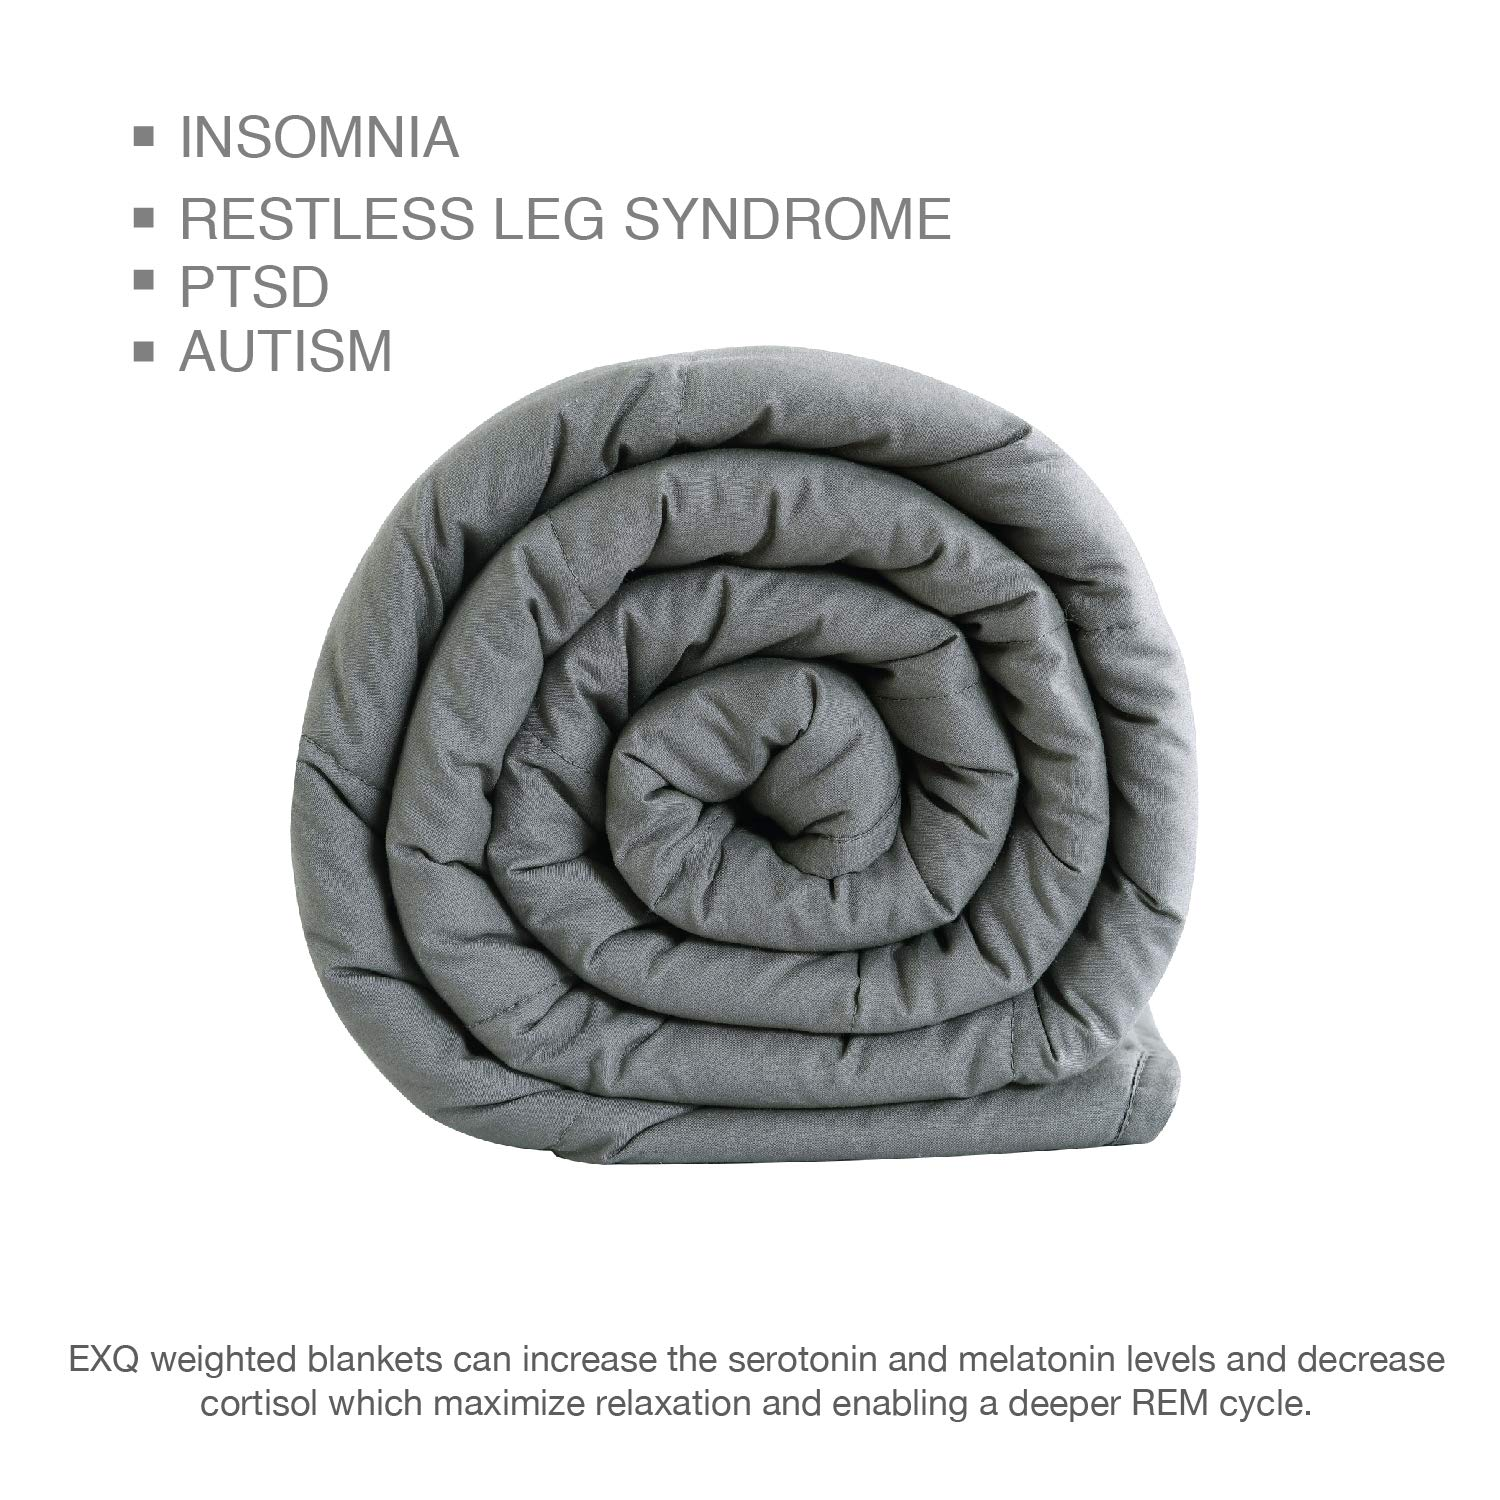 EXQ Home Weighted Blanket 7 lbs for Kids White Elephant Heavy Blanket Super Soft Thick Blanket with Premium Glass Beads Organic Cotton